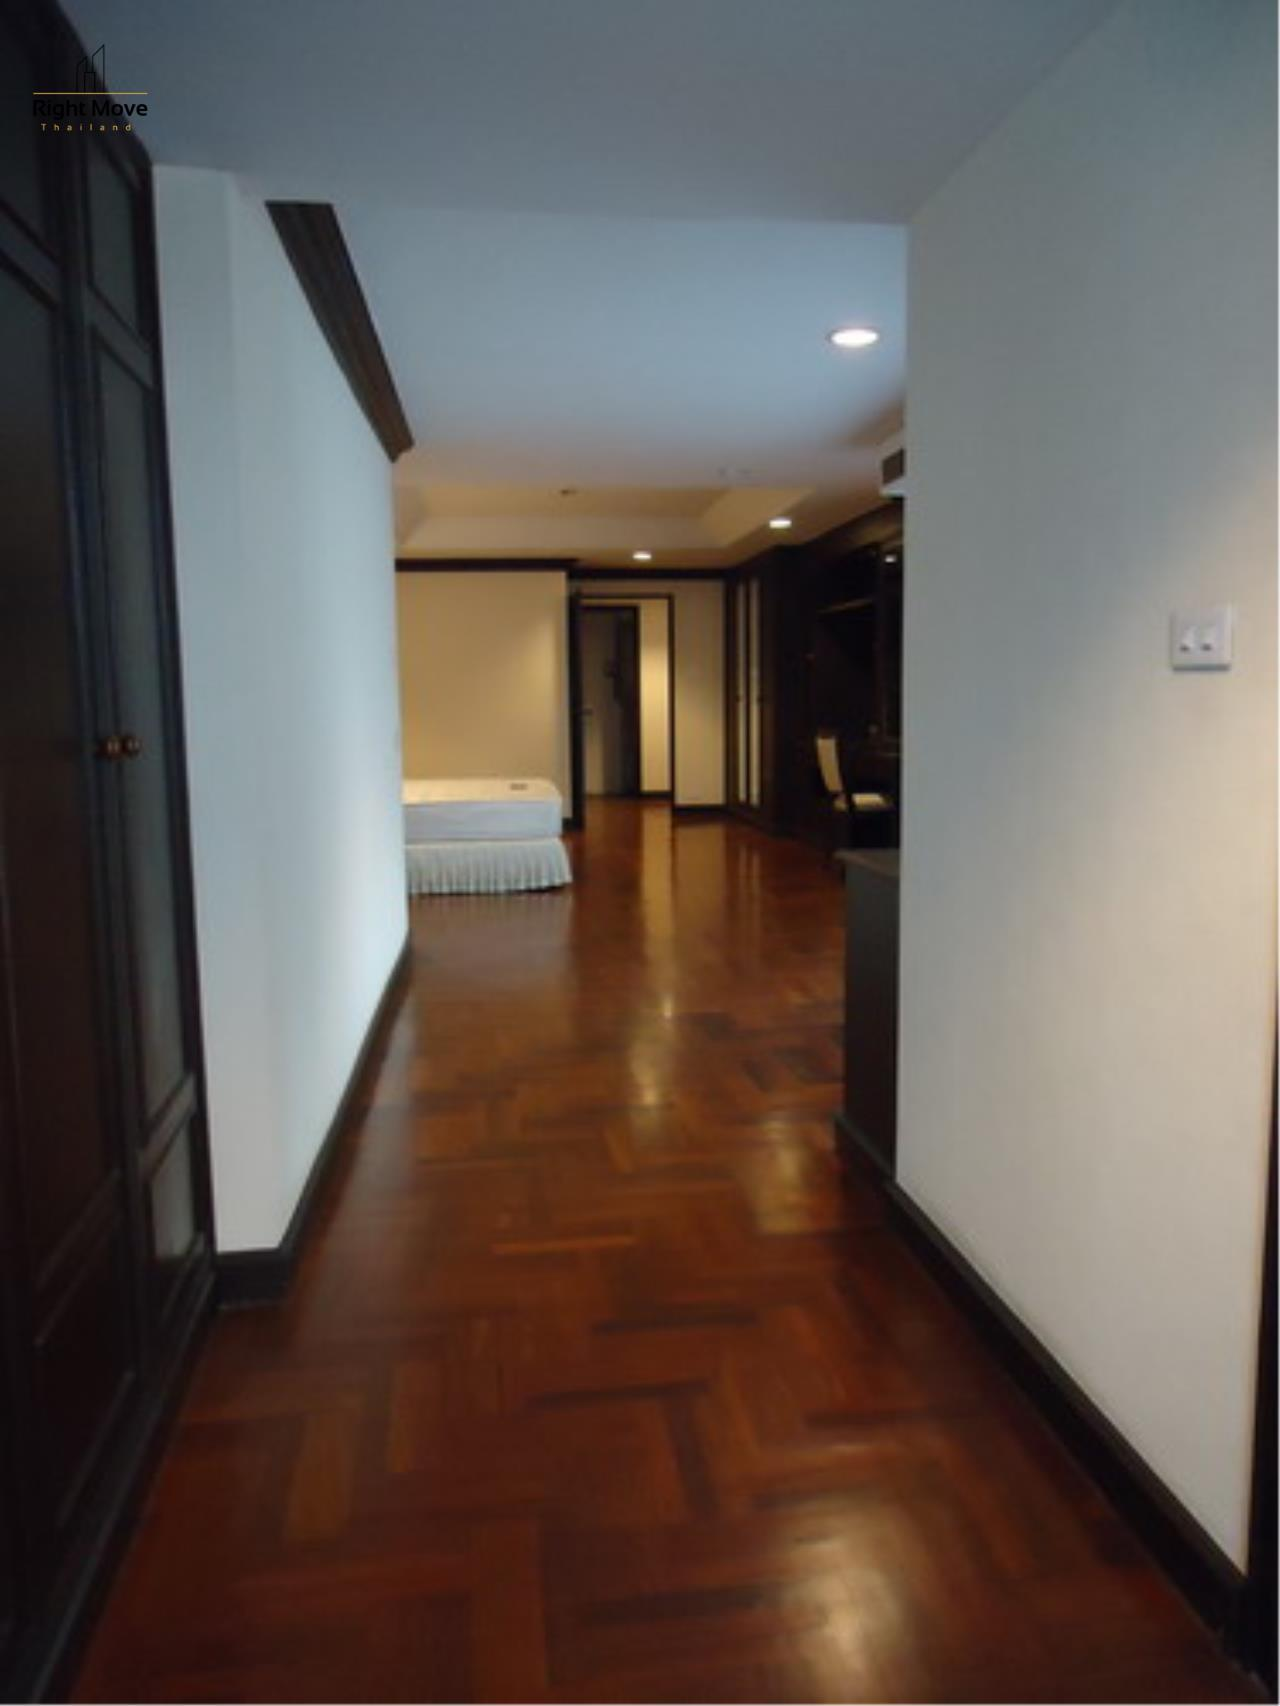 Right Move Thailand Agency's CA3559 Penthouse Duplex For Rent 150,000 THB 4+1 Bedrooms 600 Sqm 3